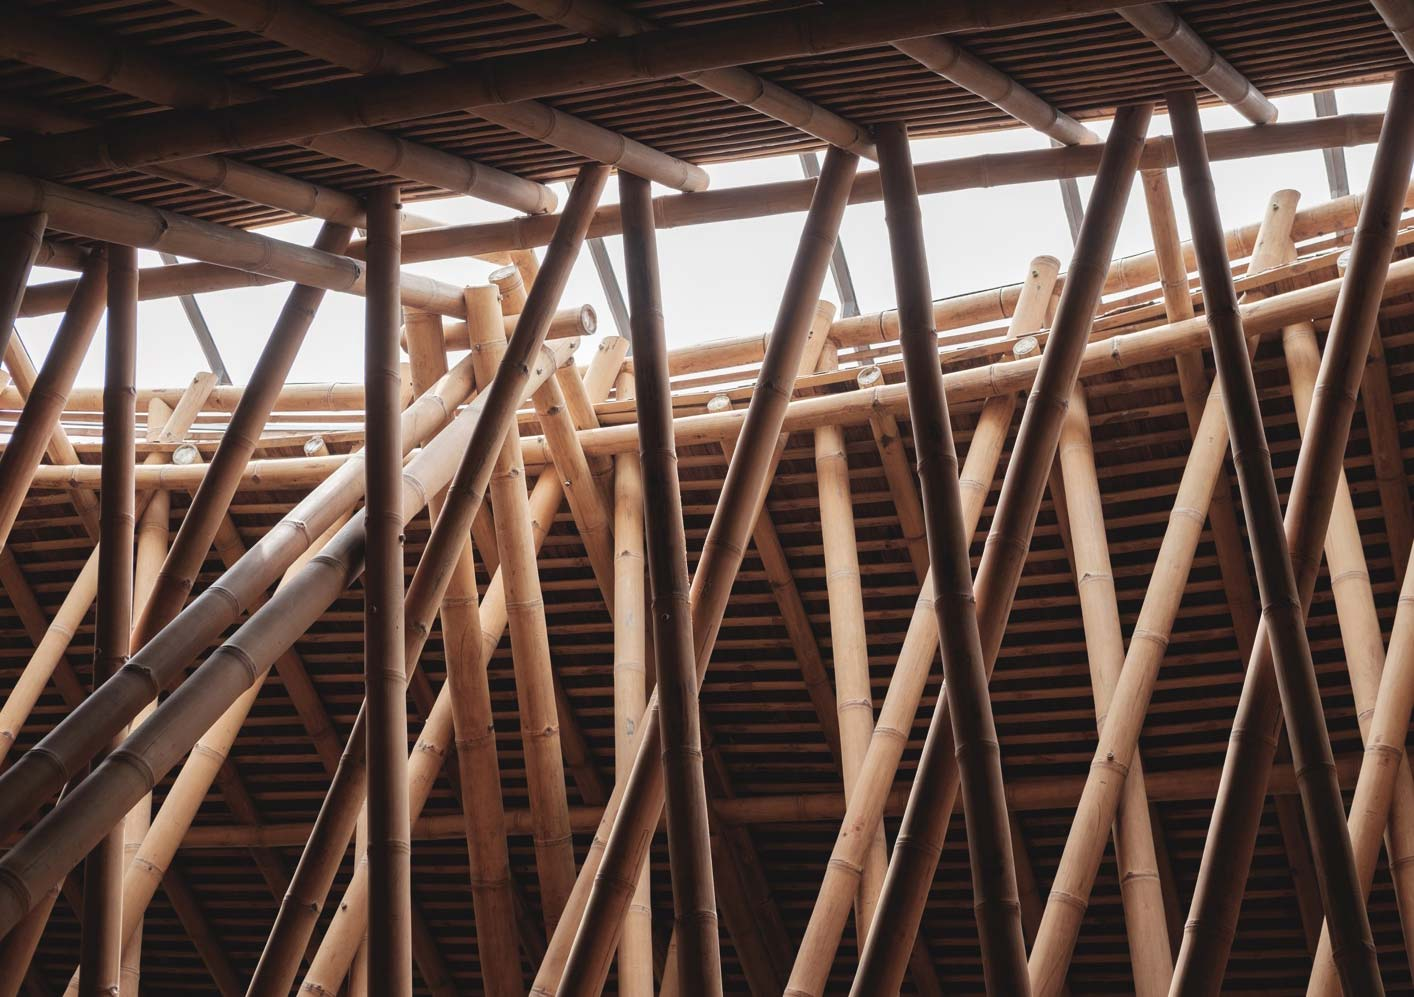 Bamboo skylight in roof